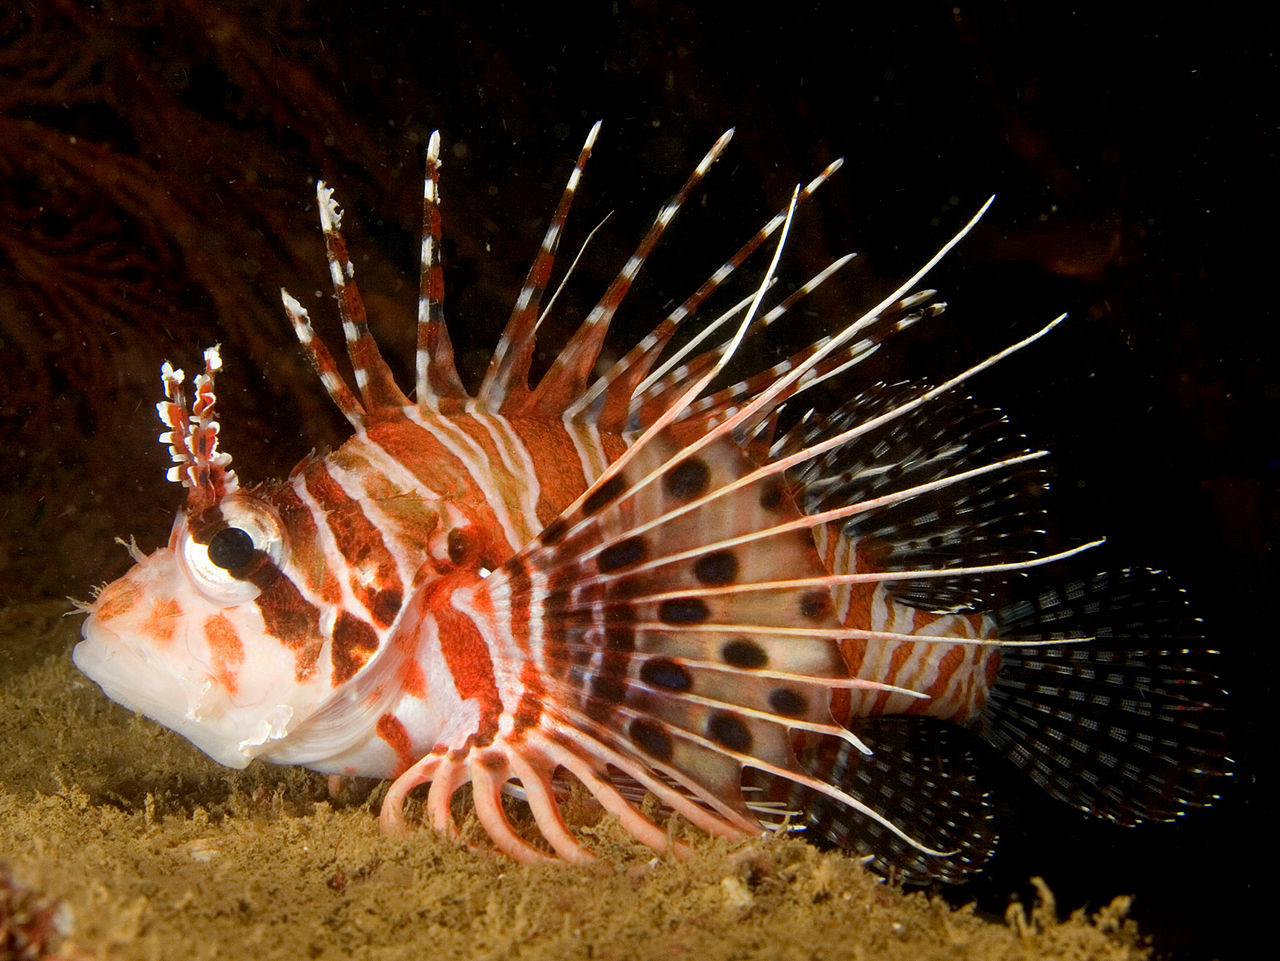 Ragged-finned firefish (Pterois antennata)